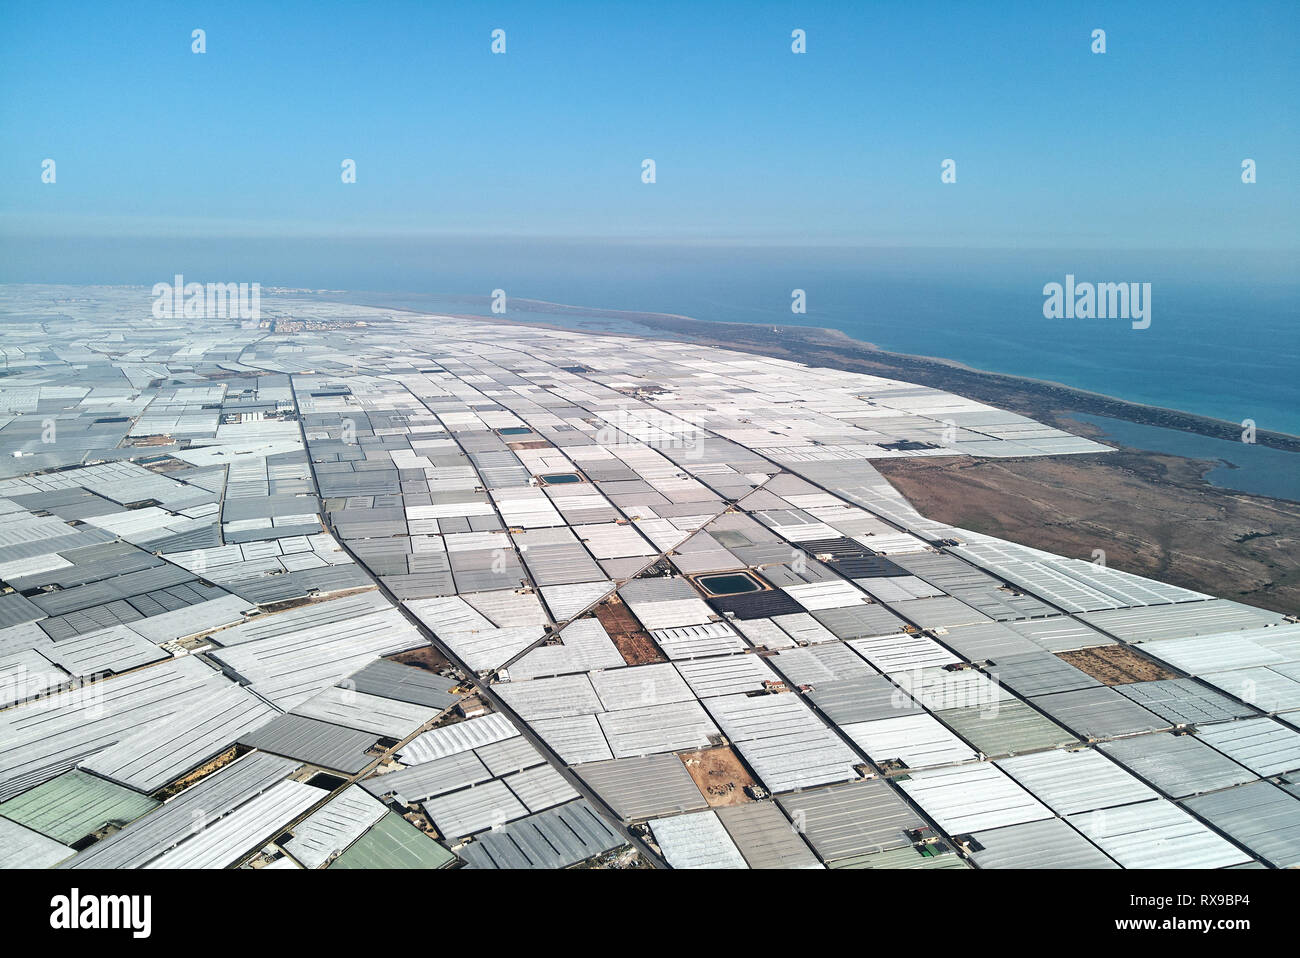 Aerial drone point of view lot of polythene plastic exterior greenhouses hothouses where cultivated fruits and vegetables in Almerimar near the sea, p - Stock Image